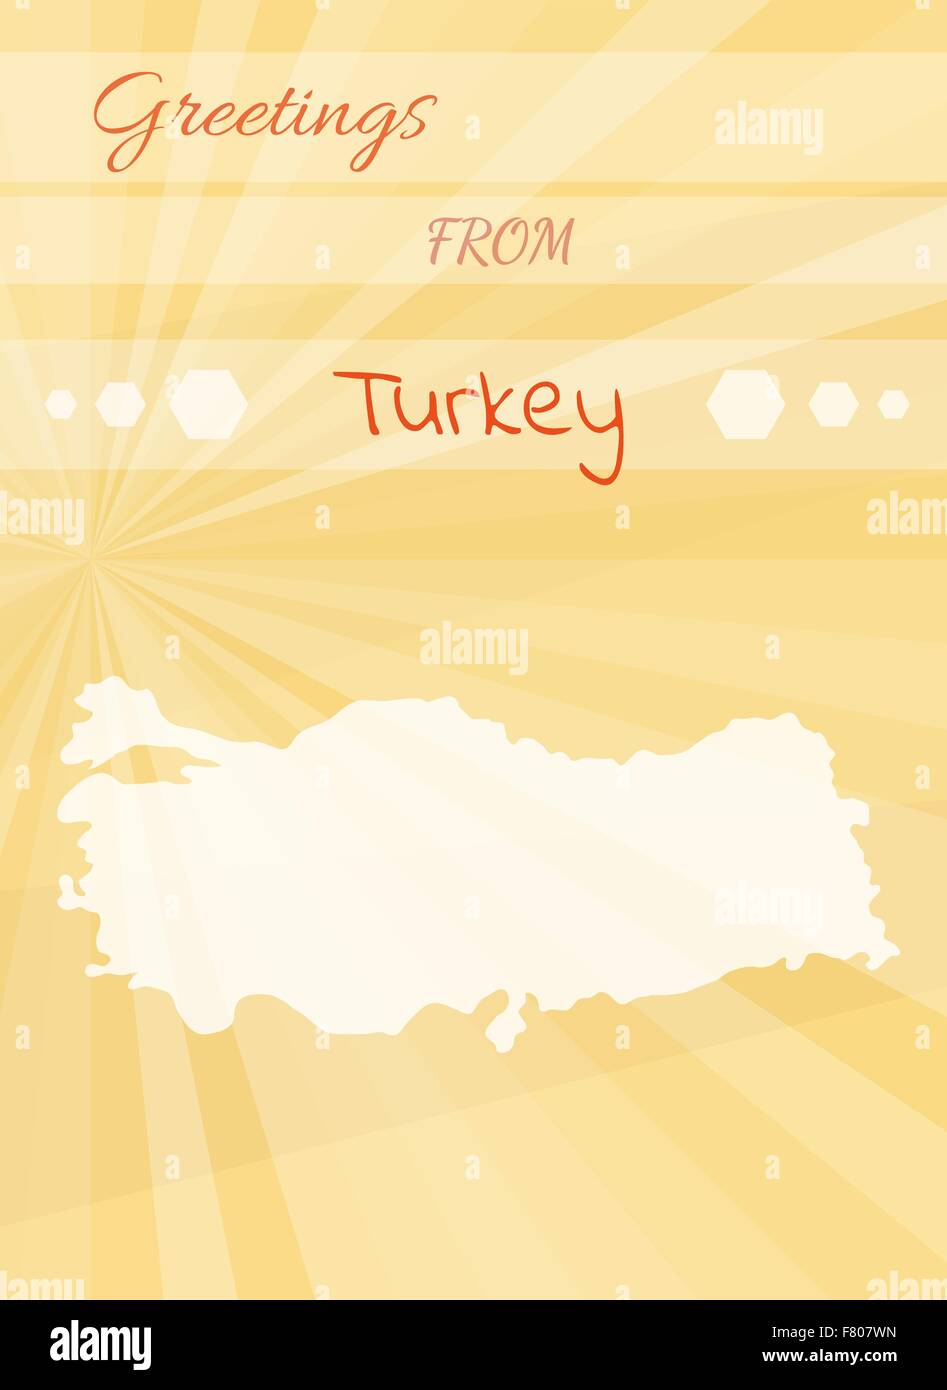 Greeting from turkey stock photos greeting from turkey stock greetings from turkey stock image m4hsunfo